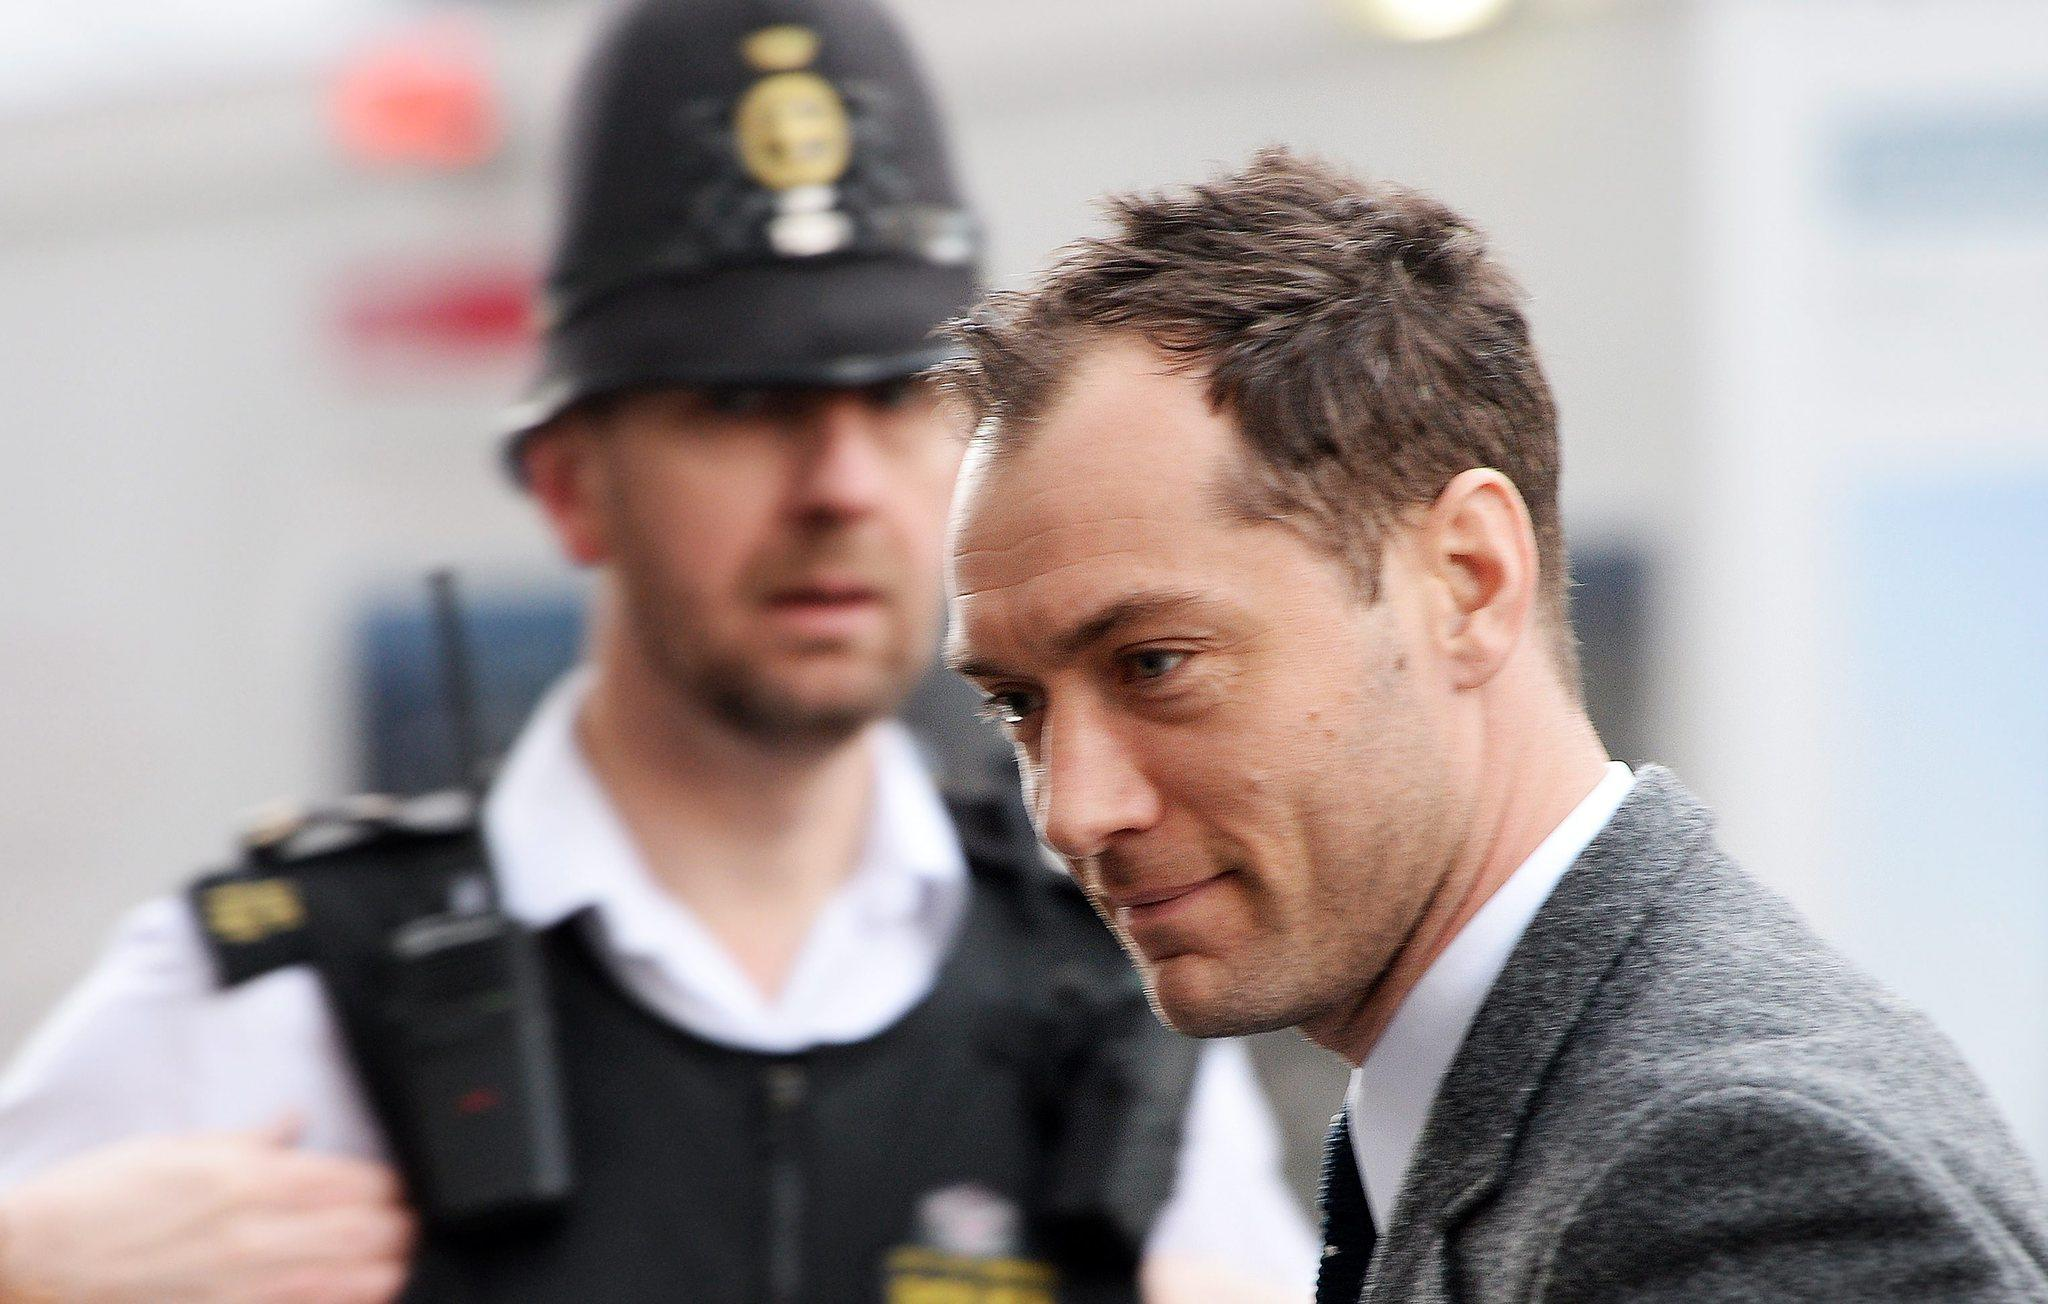 Jude Law arrives at the Old Bailey Criminal Court to give evidence in the 'News of the World' hacking trial in London.